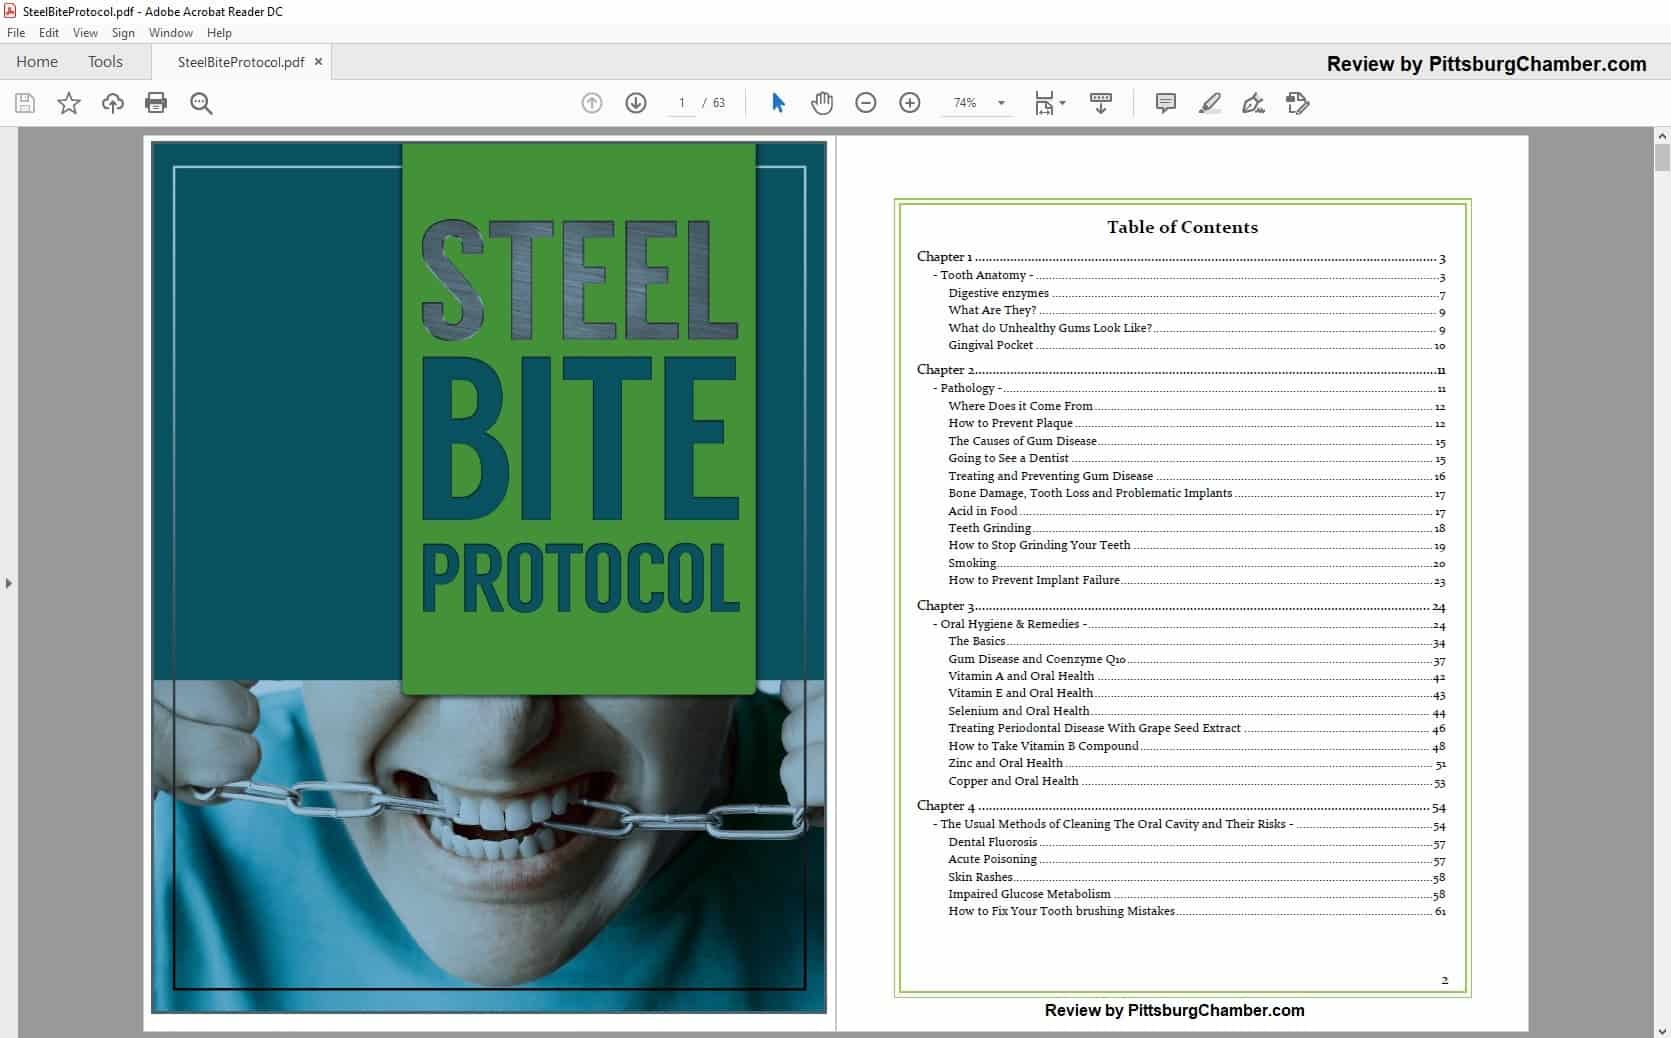 Steel Bite Protocol Table of Contents